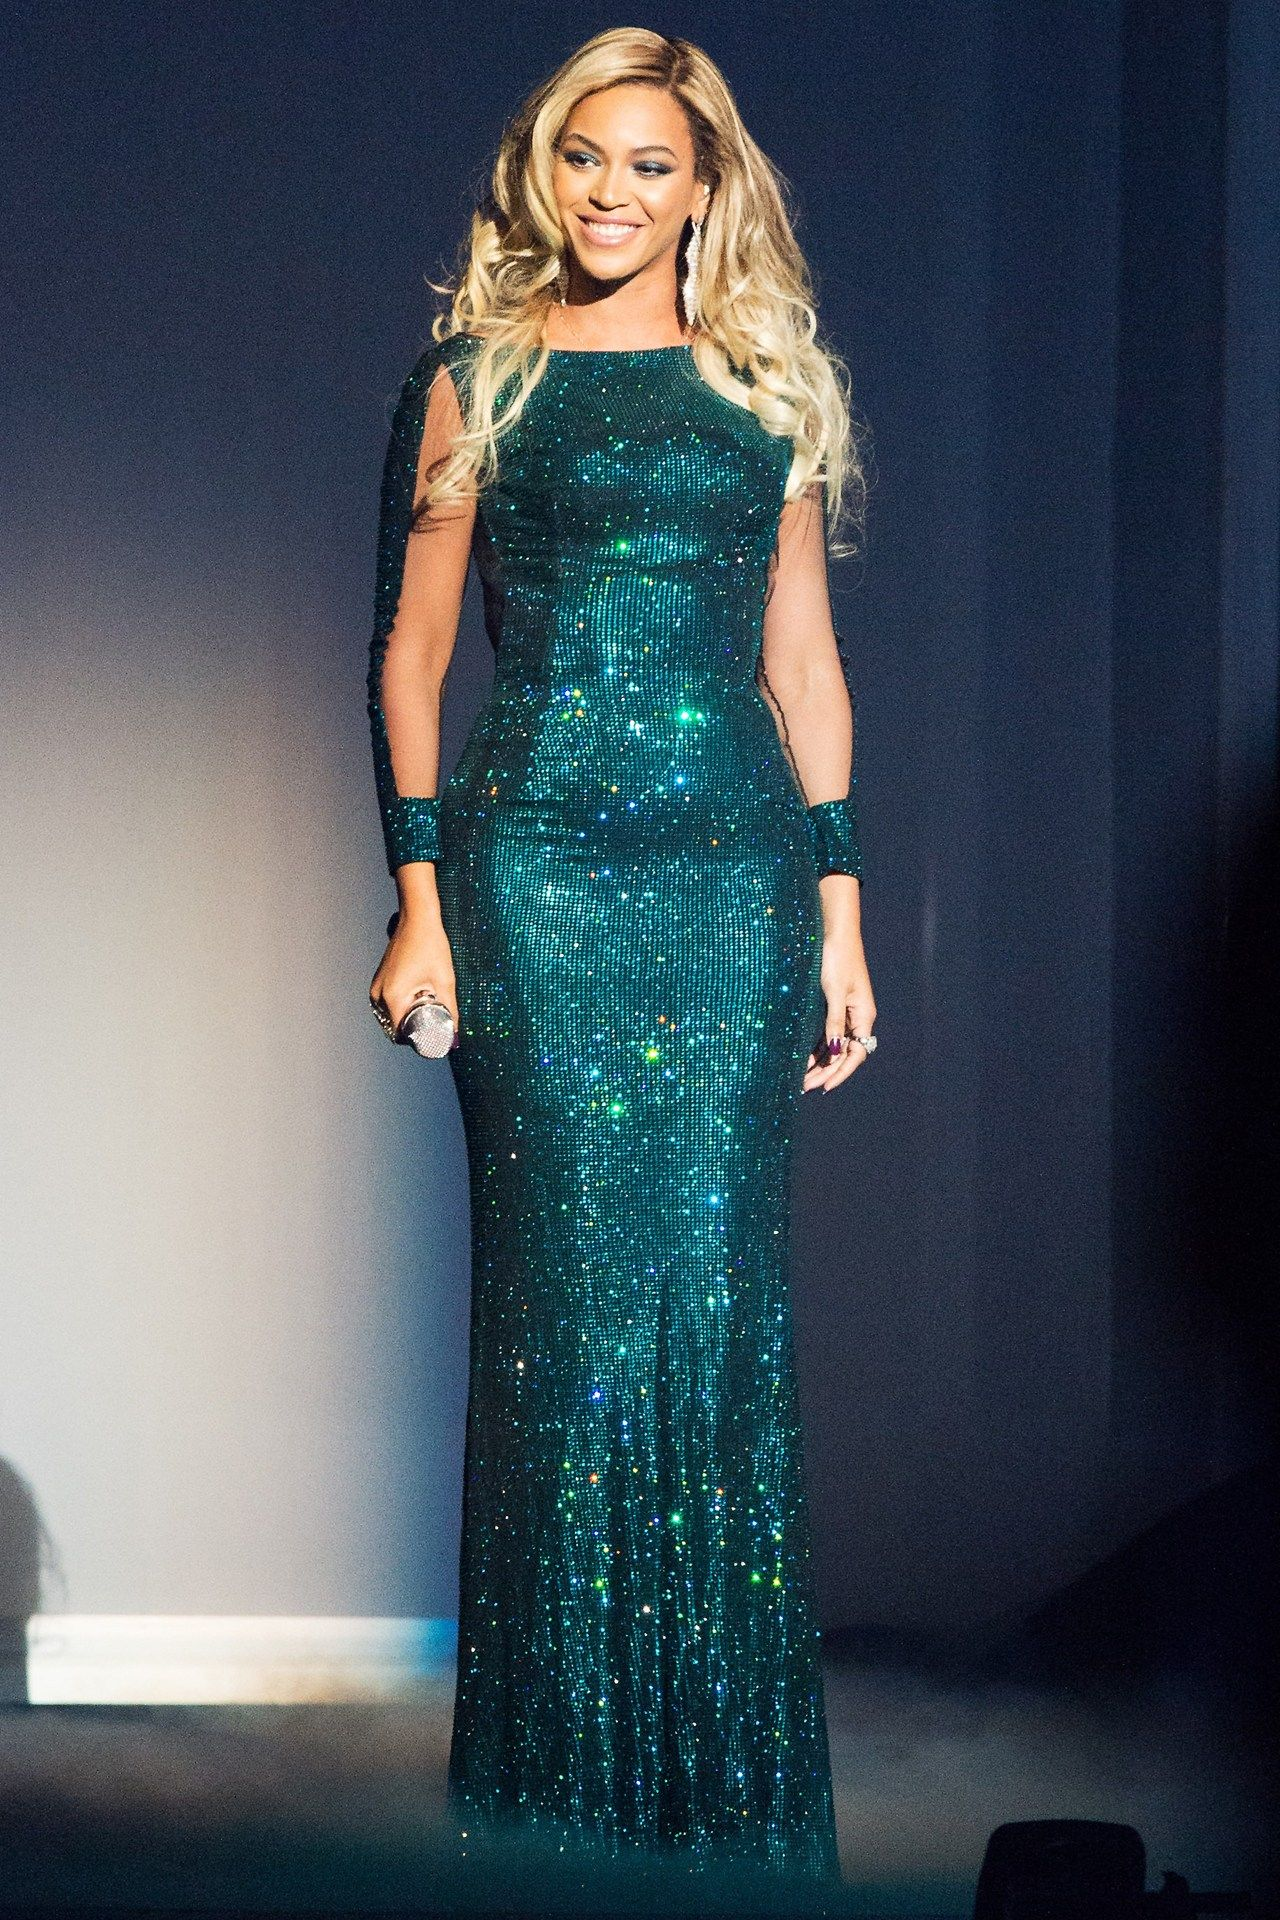 Brit Awards 2014 | Songs, Queens and Celebrity